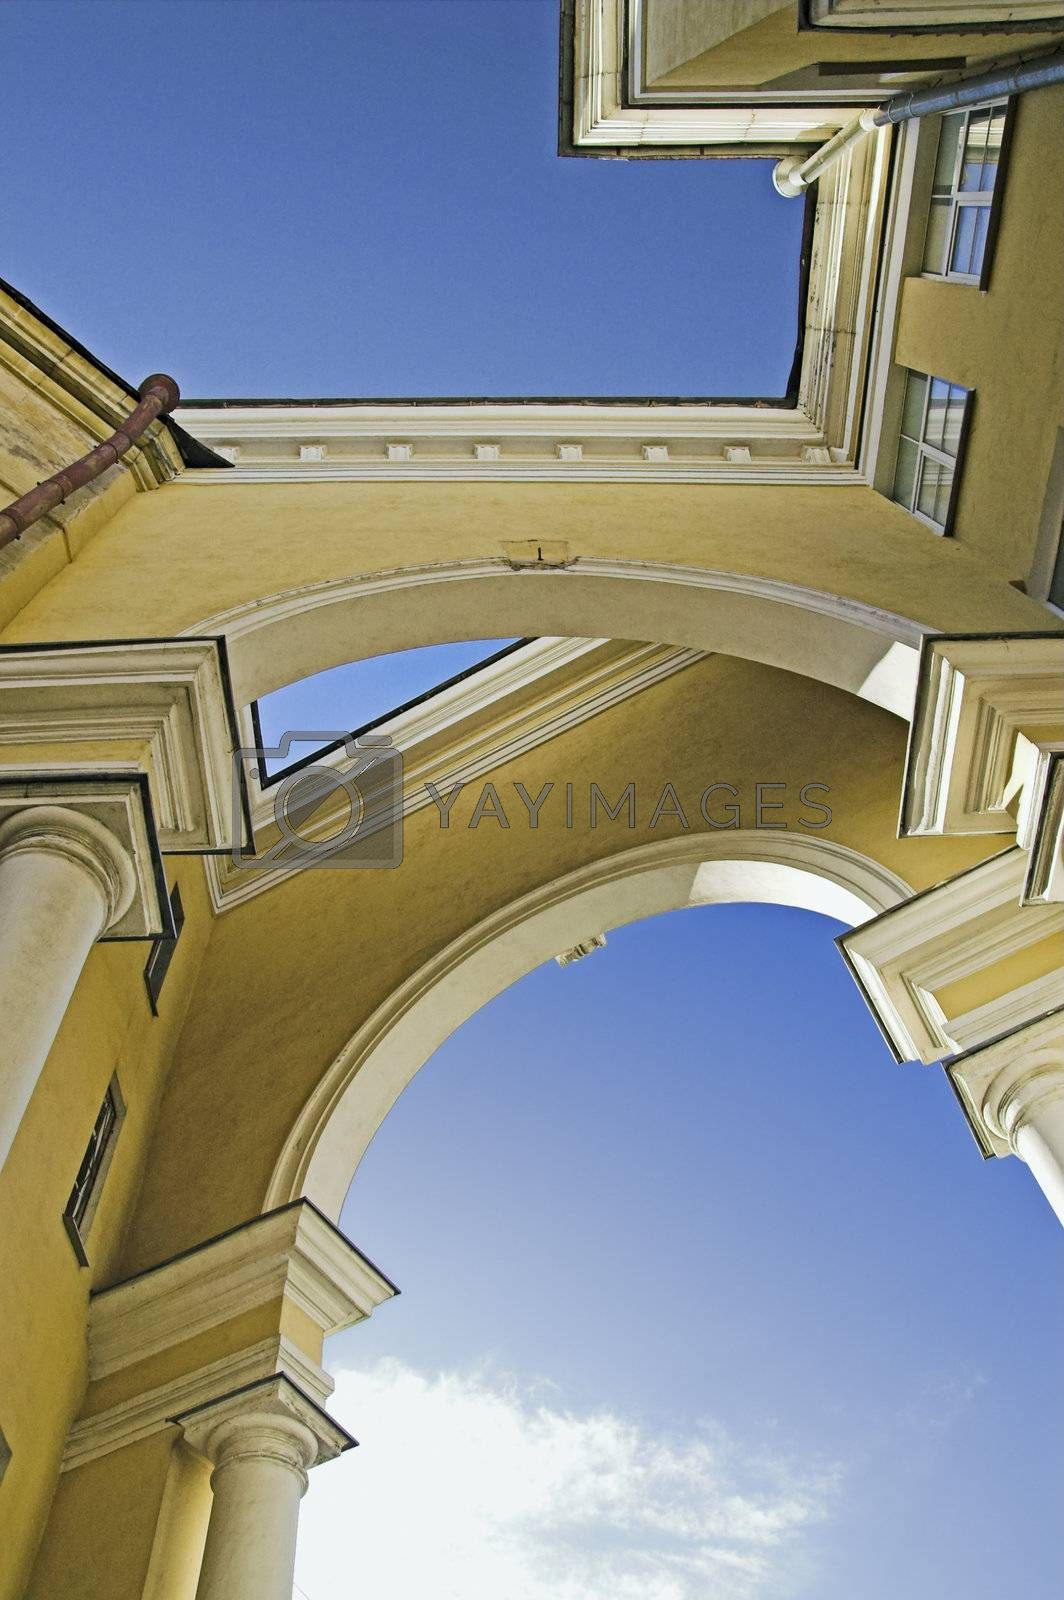 Intricate arched structure of old building